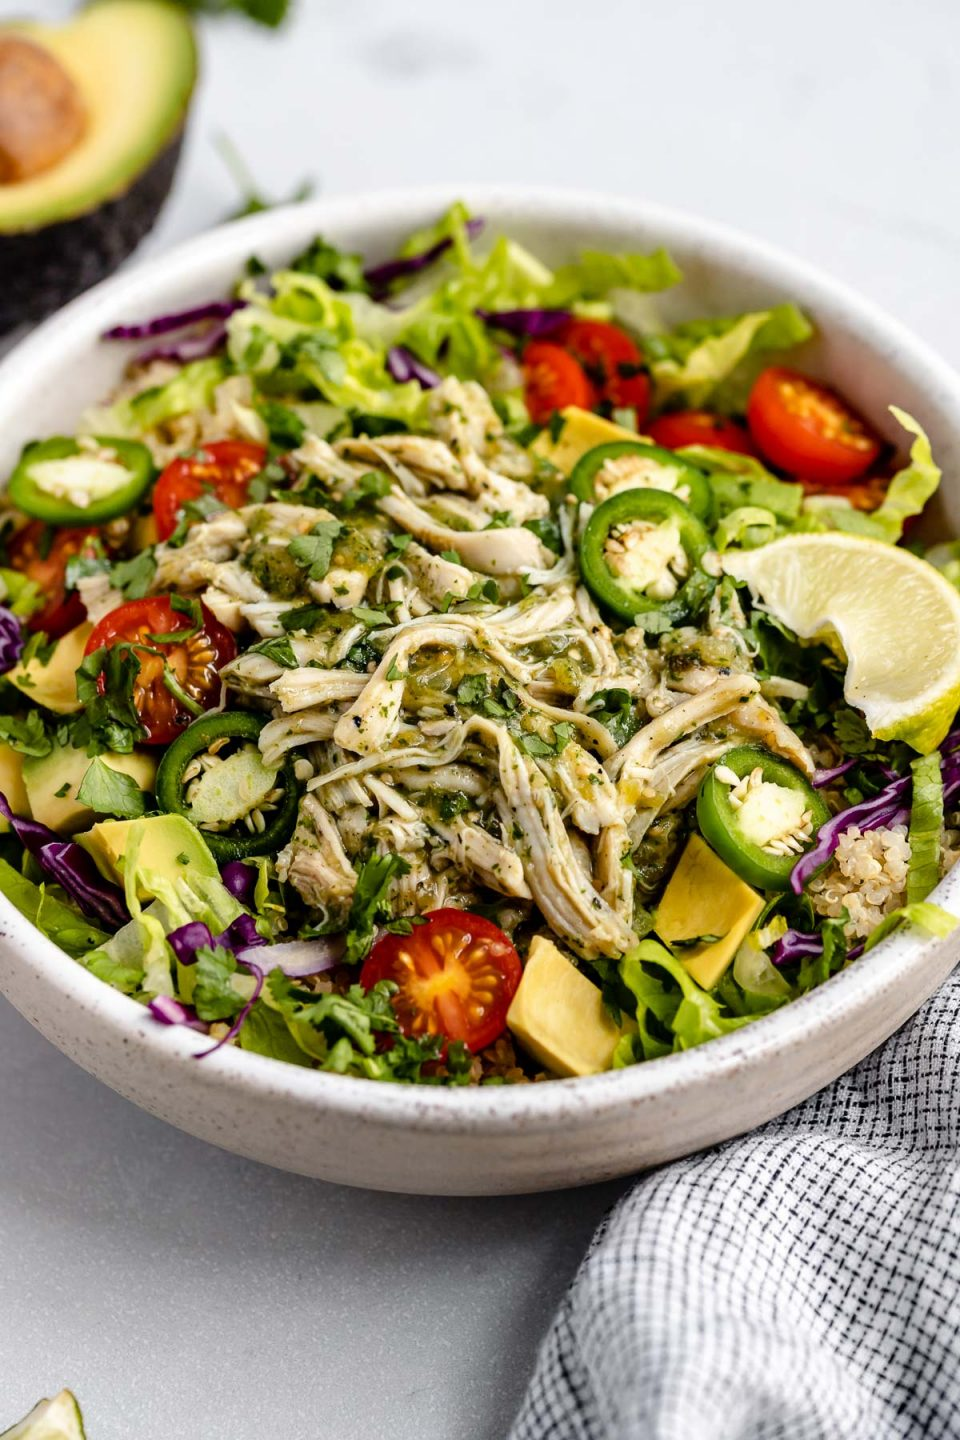 Side angle of shredded salsa verde chicken (pollo verde) shown in a large burrito bowl, made with quinoa, lettuce, cabbage, tomatoes, avocado & jalapeno. The bowl sits atop a light blue surface, next to a checkered blue linen, a halved avocado, cilantro leaves & a lime wedge.